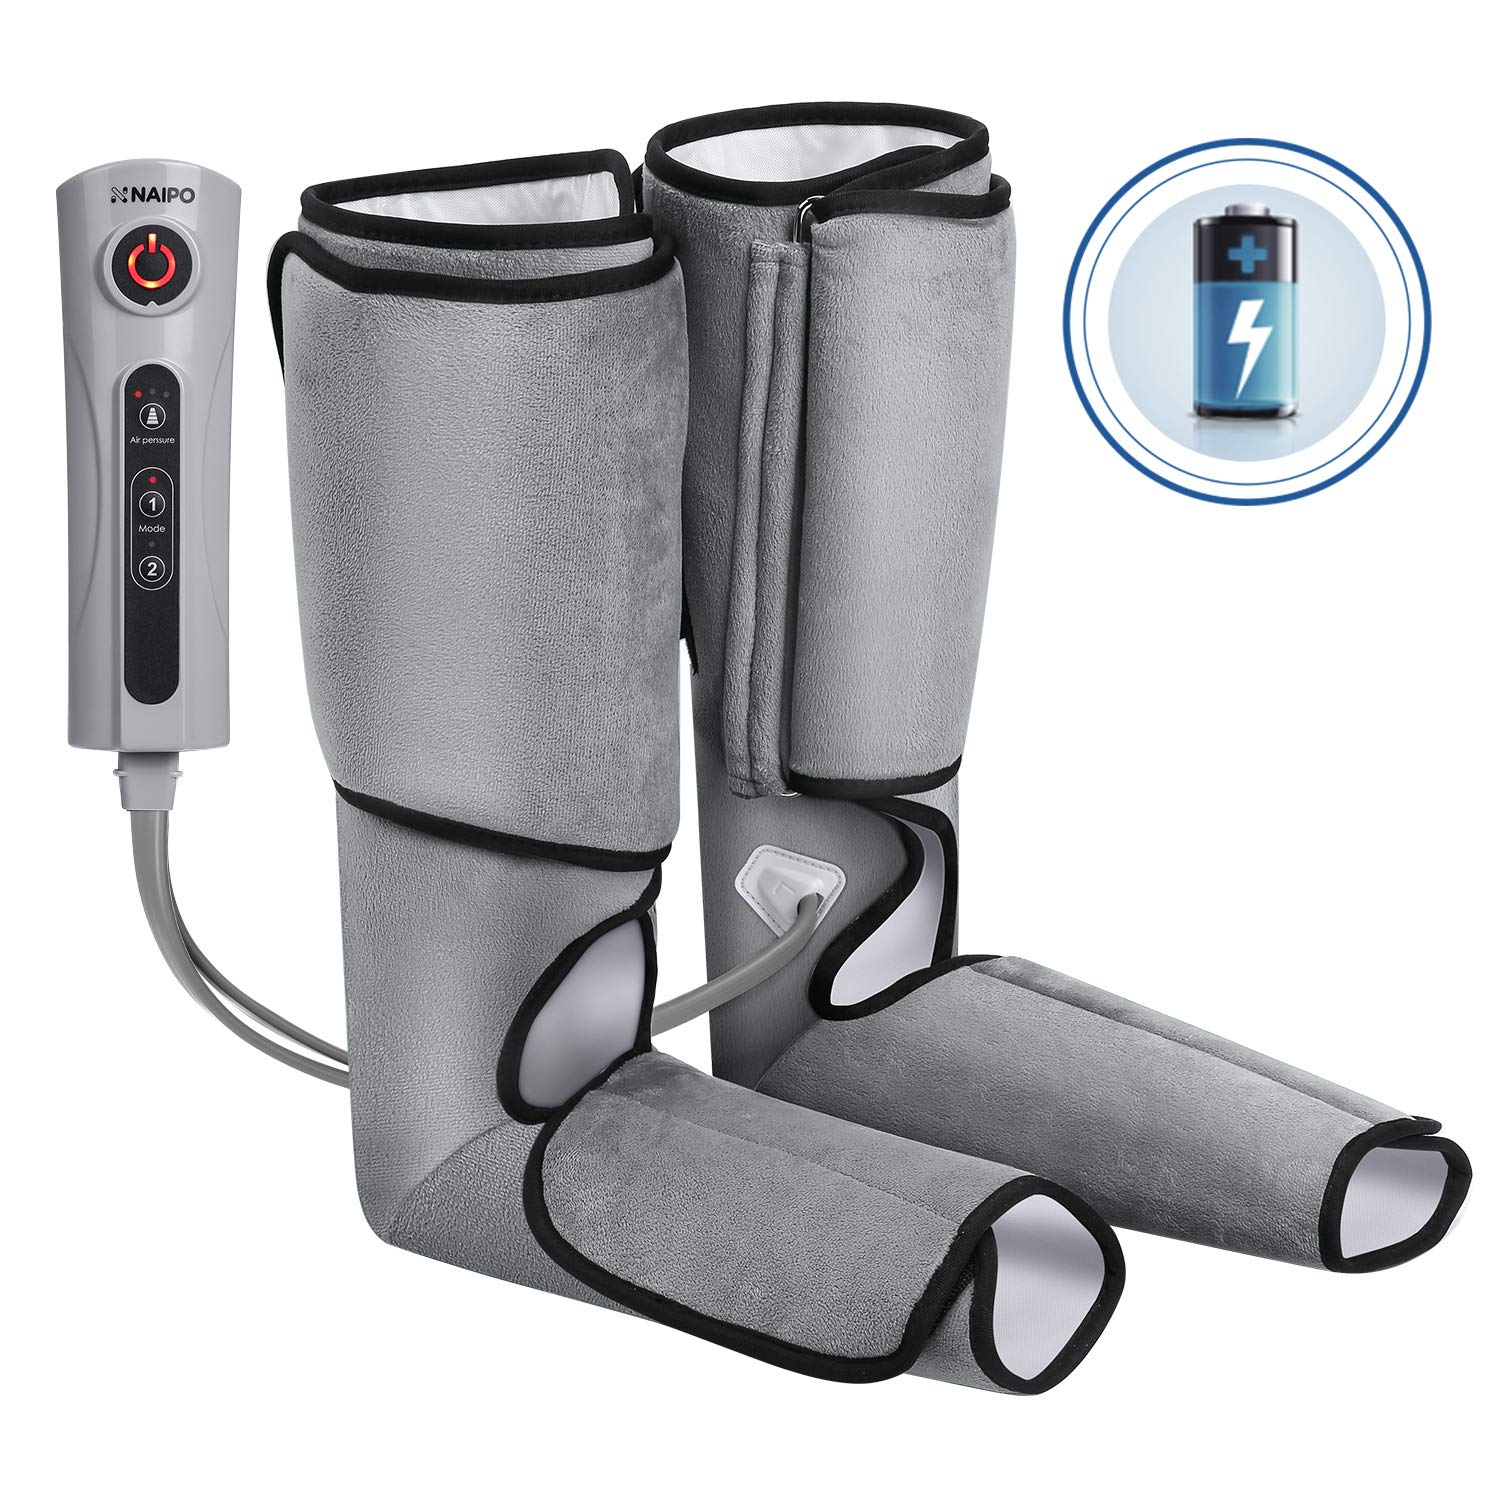 Naipo Leg Massager Air Compression Rechargeable Foot and Calf Massage Battery Operated Leg Wraps with 3 Intensity Levels 2 Modes Controller - Grey